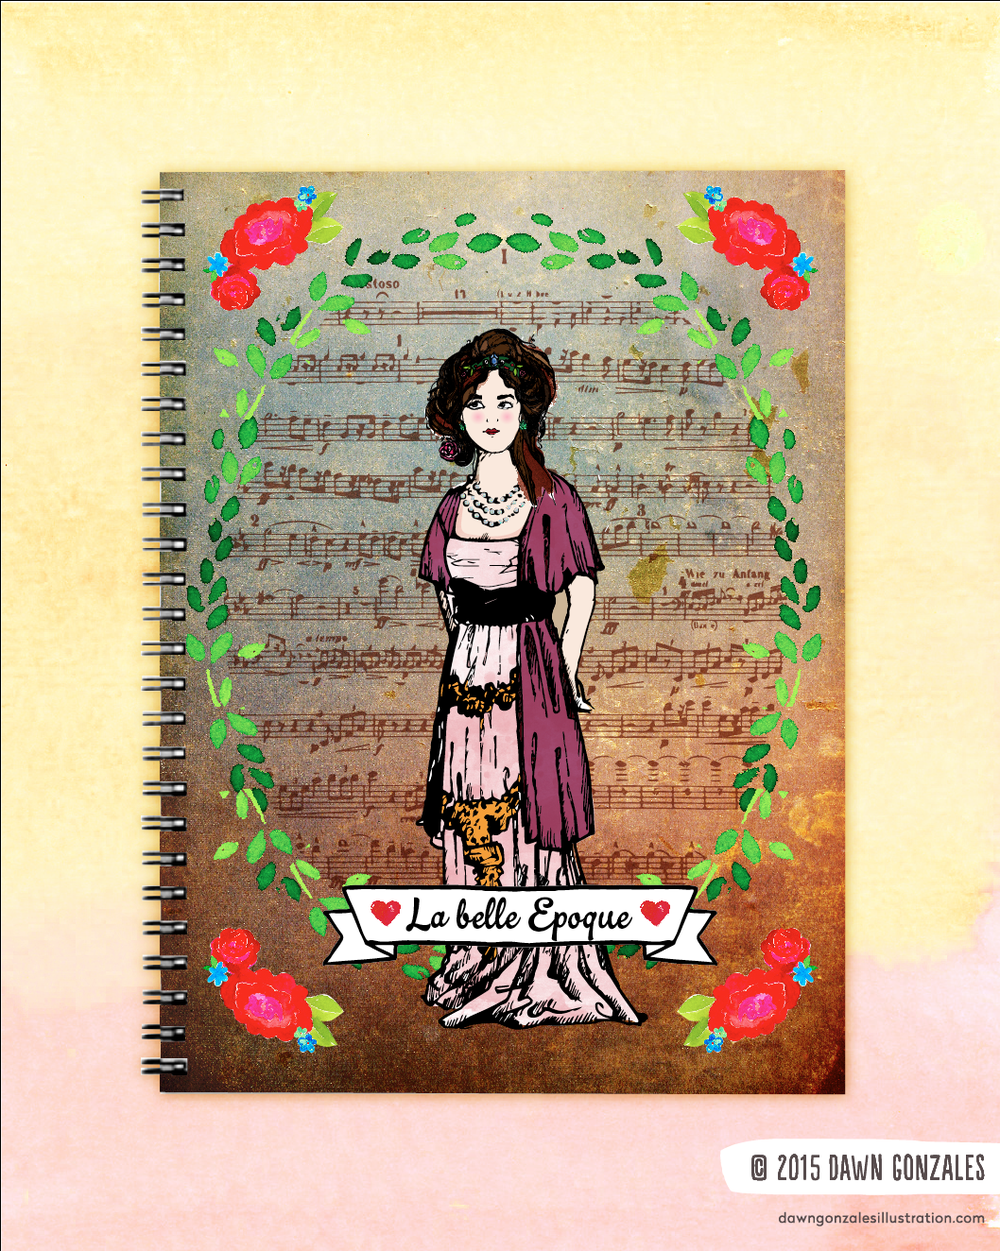 La Belle Epoque Lady Journal Cover by Dawn Gonzales